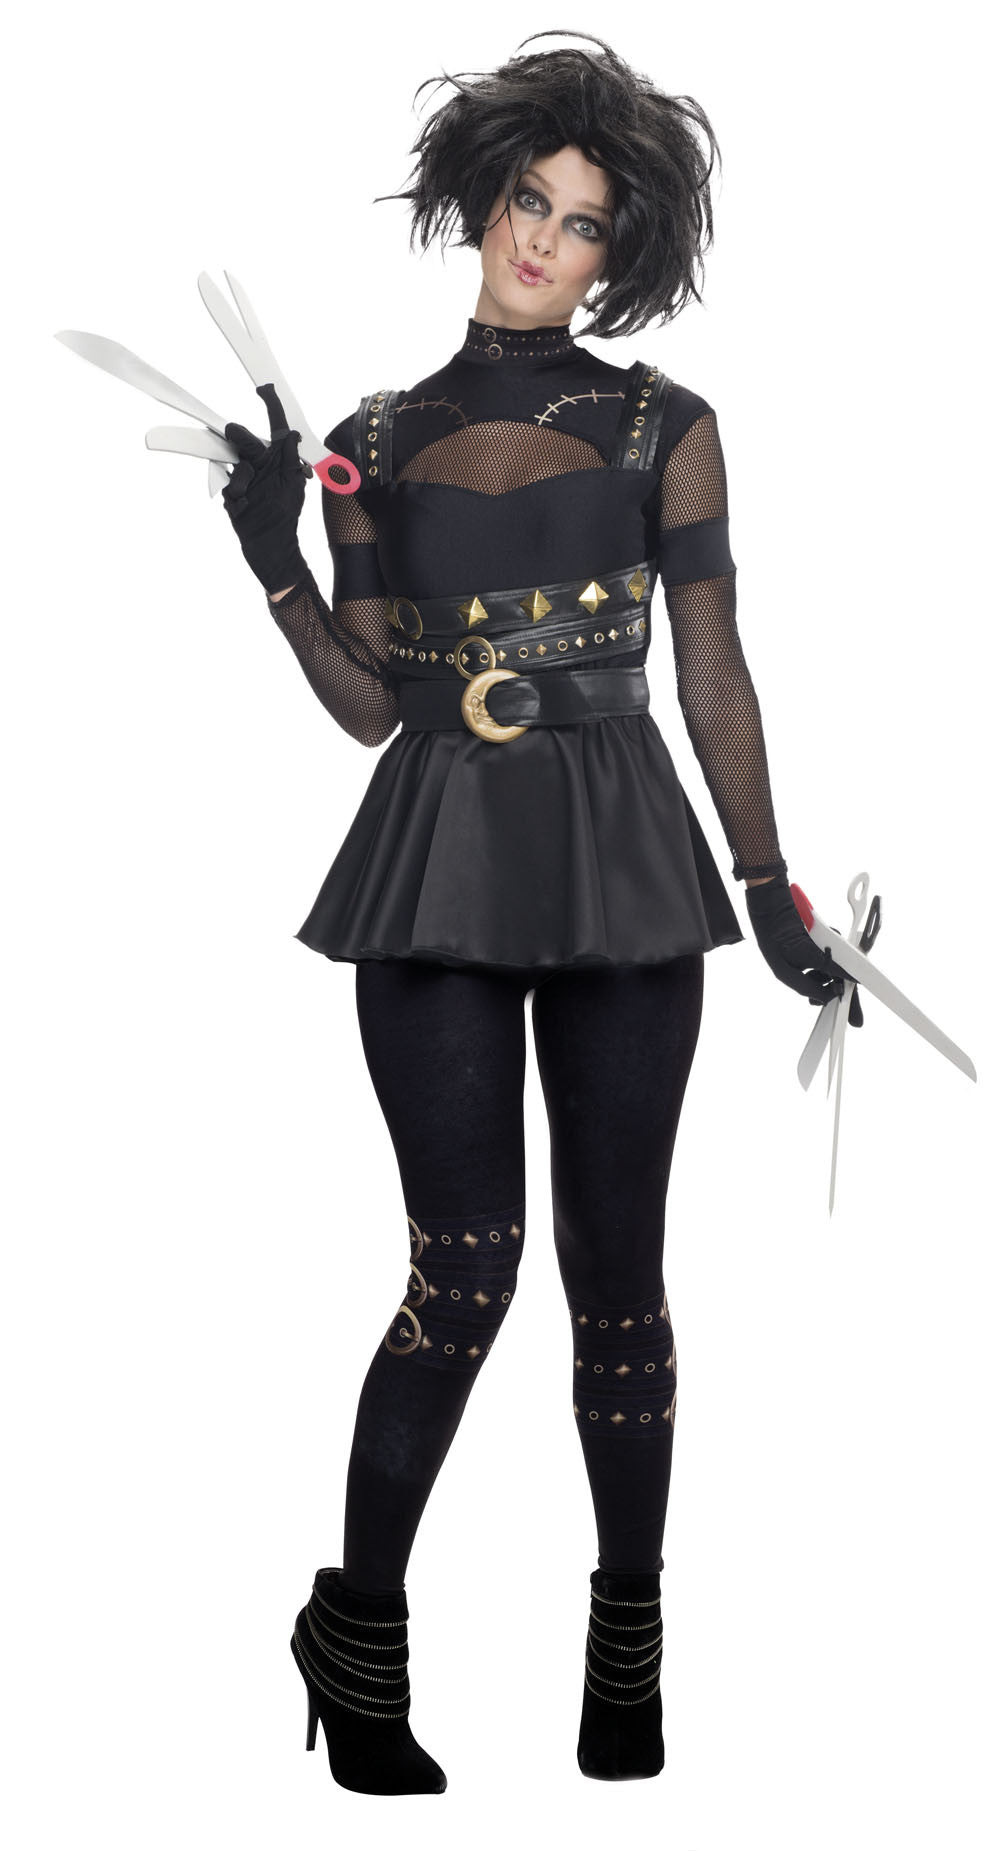 EDWARD SCISSORHANDS FEMALE COSTUME - SIZE L